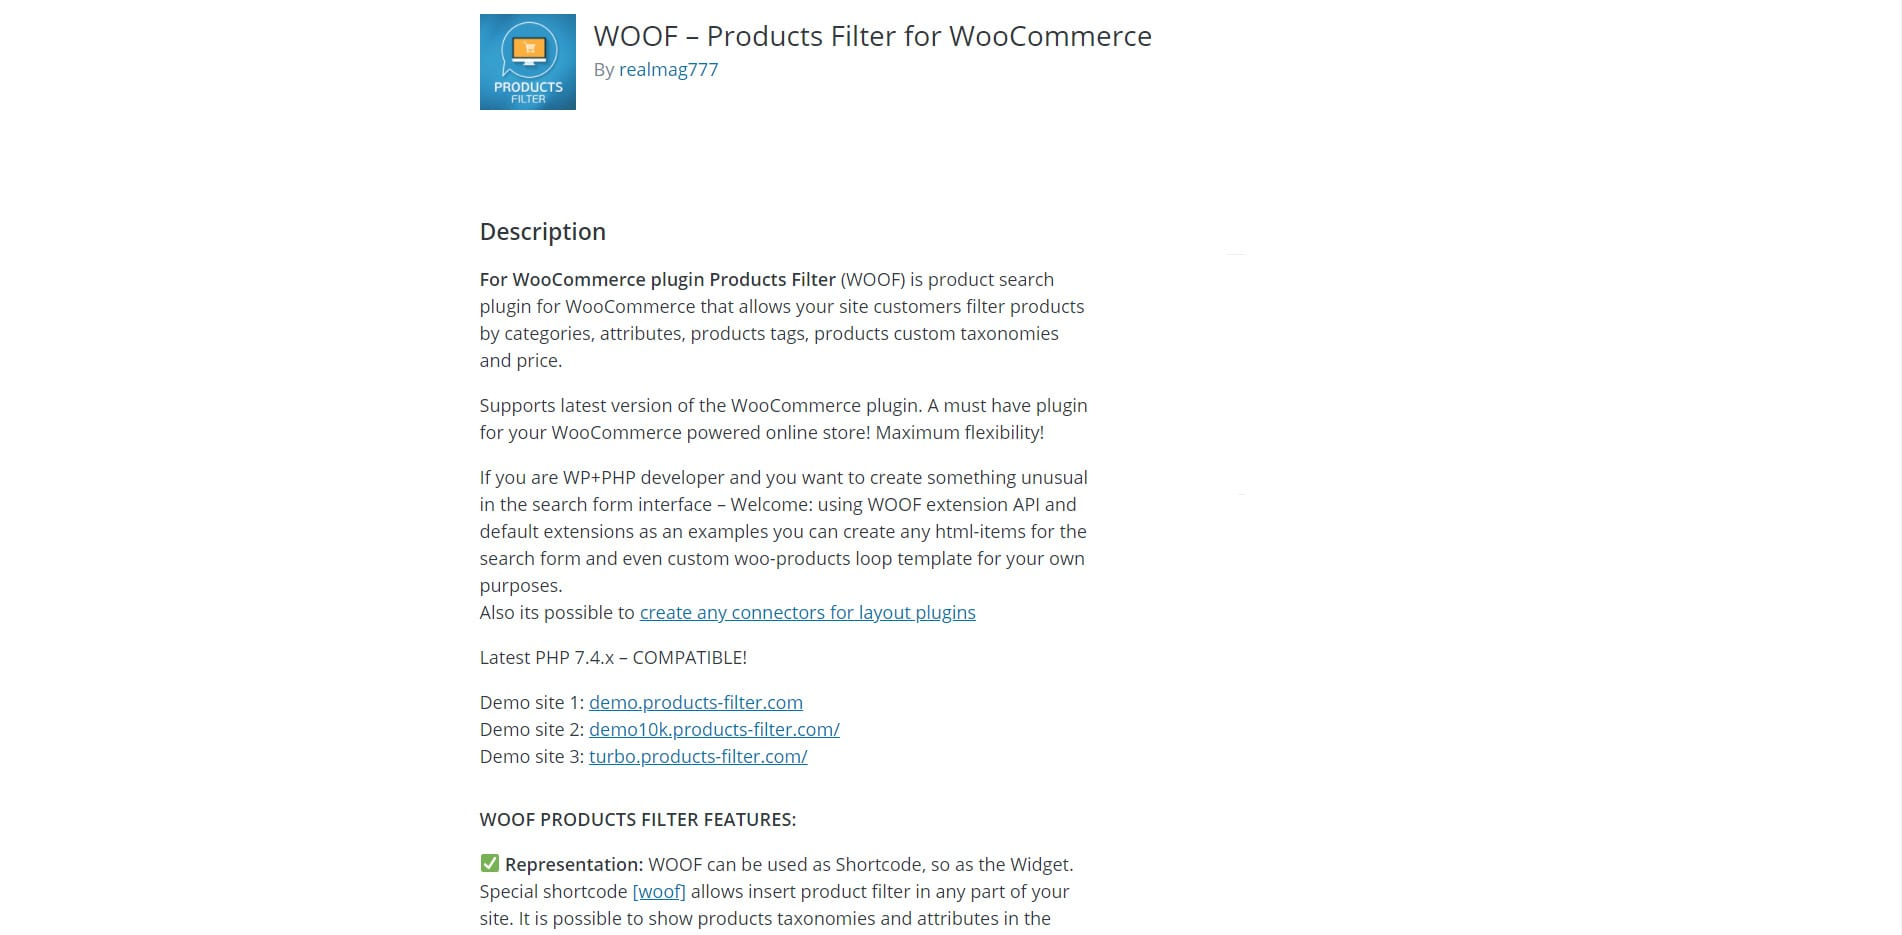 woof-product-filter-for-woocommerce